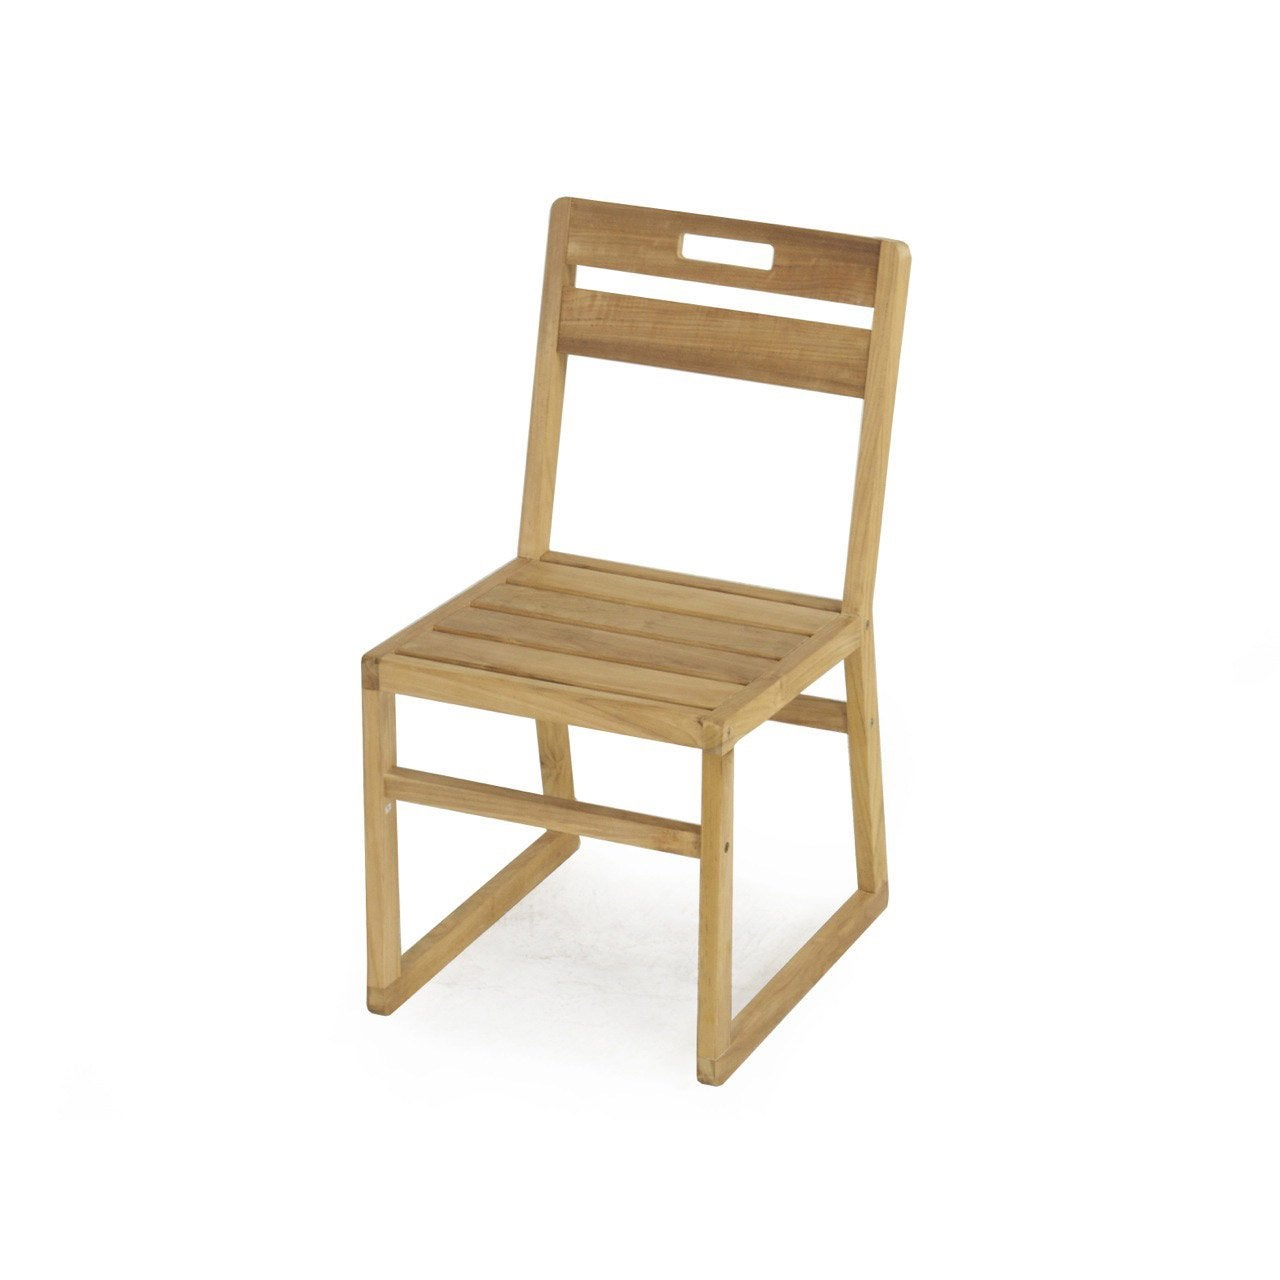 Chaise de jardin en bois resort naturel leroy merlin - Chaise de jardin leroy merlin ...